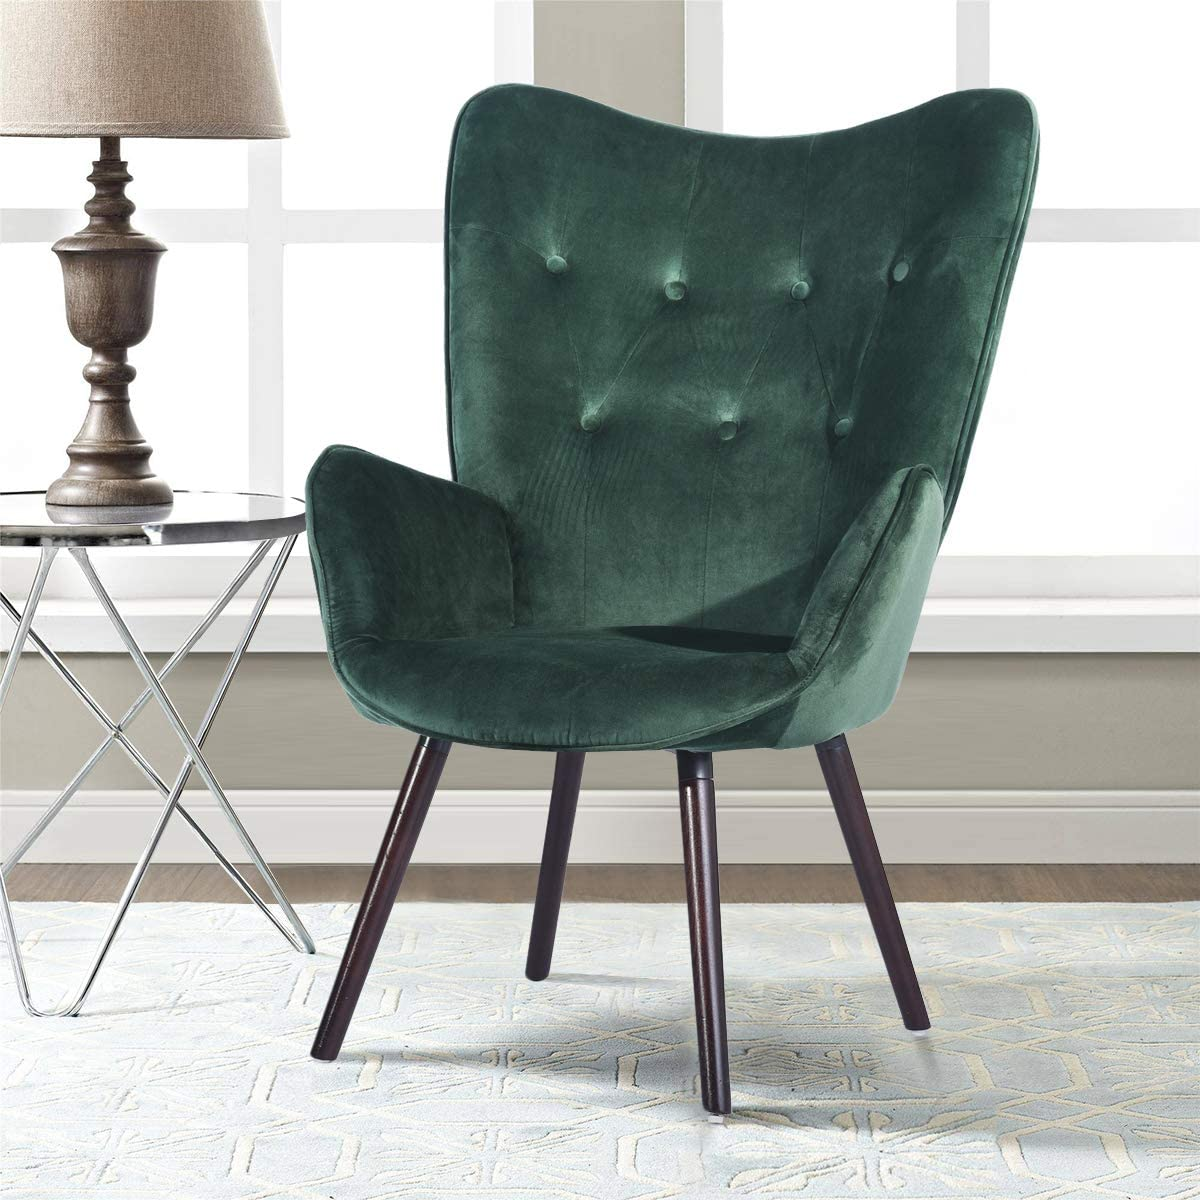 Chair for Living Room, HOMEMAKE Wingback Accent Armchair Velvet Fabric KD  Solid Wood Legs Leisure Chair (Green)